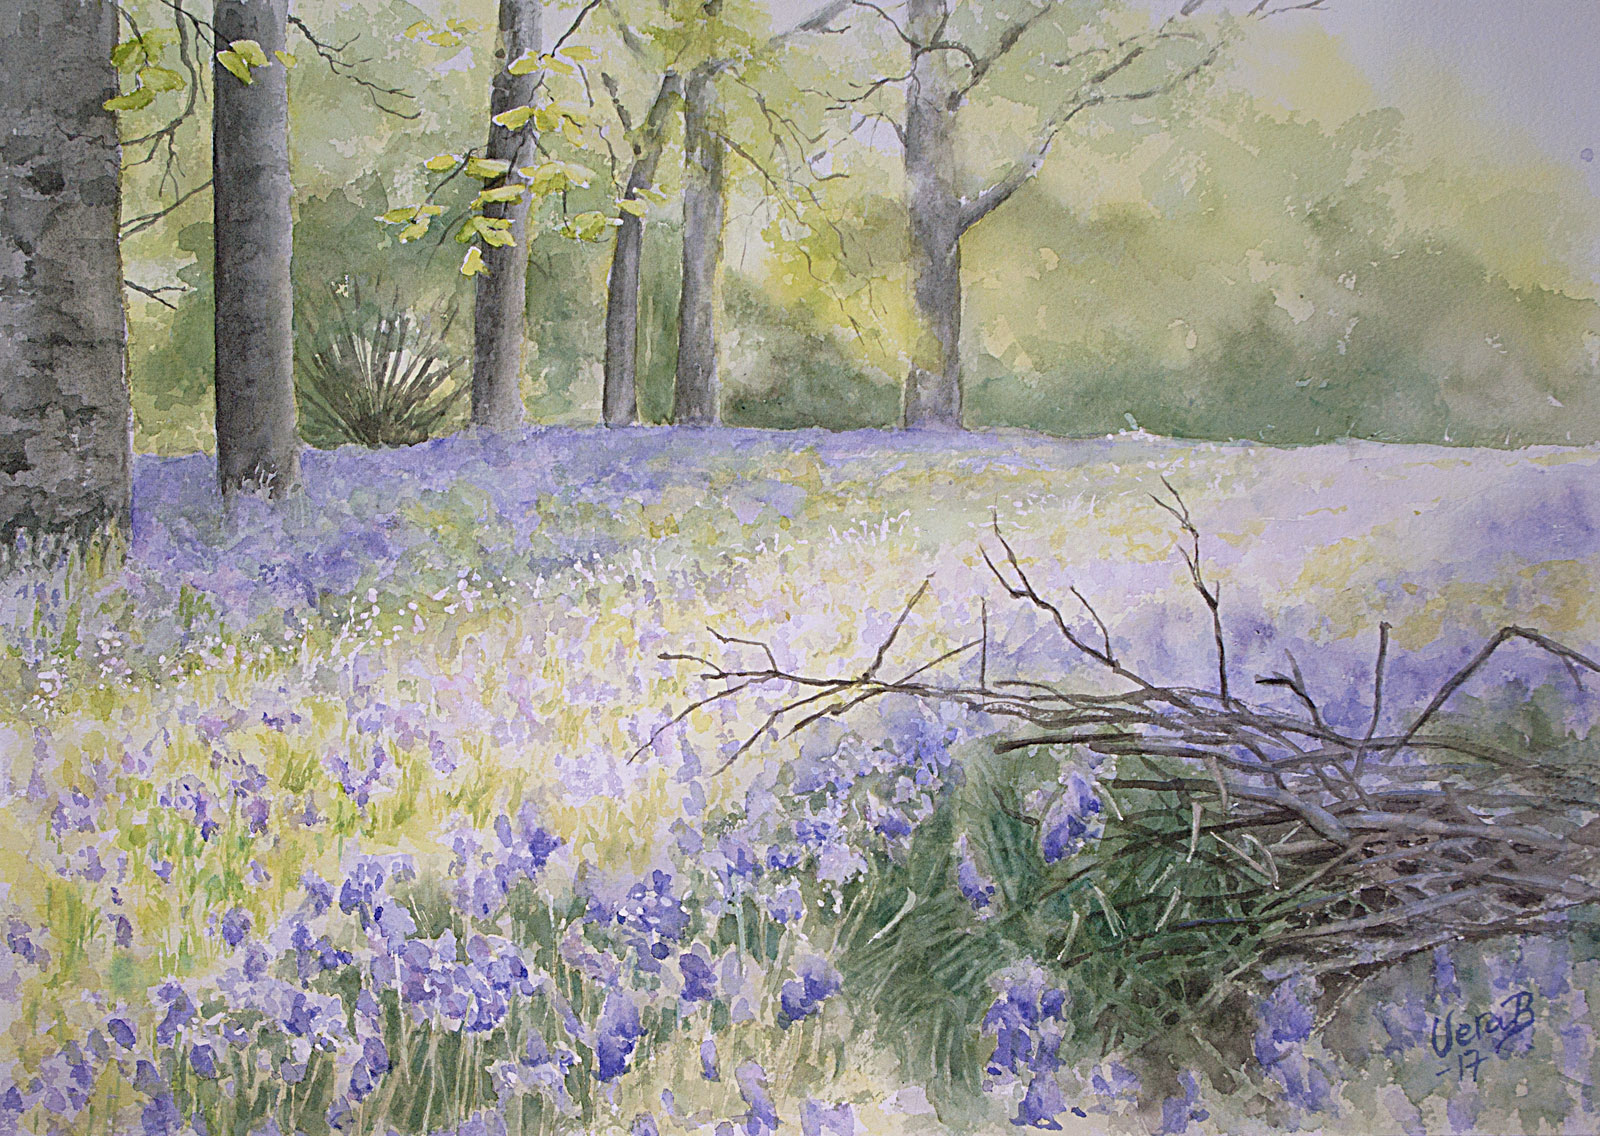 """Bluebell forest. In InArteFabriano, Italy exh. 2018. 35x50 cm (14x20"""") on Arches fine 300gsm 2017. 480€"""